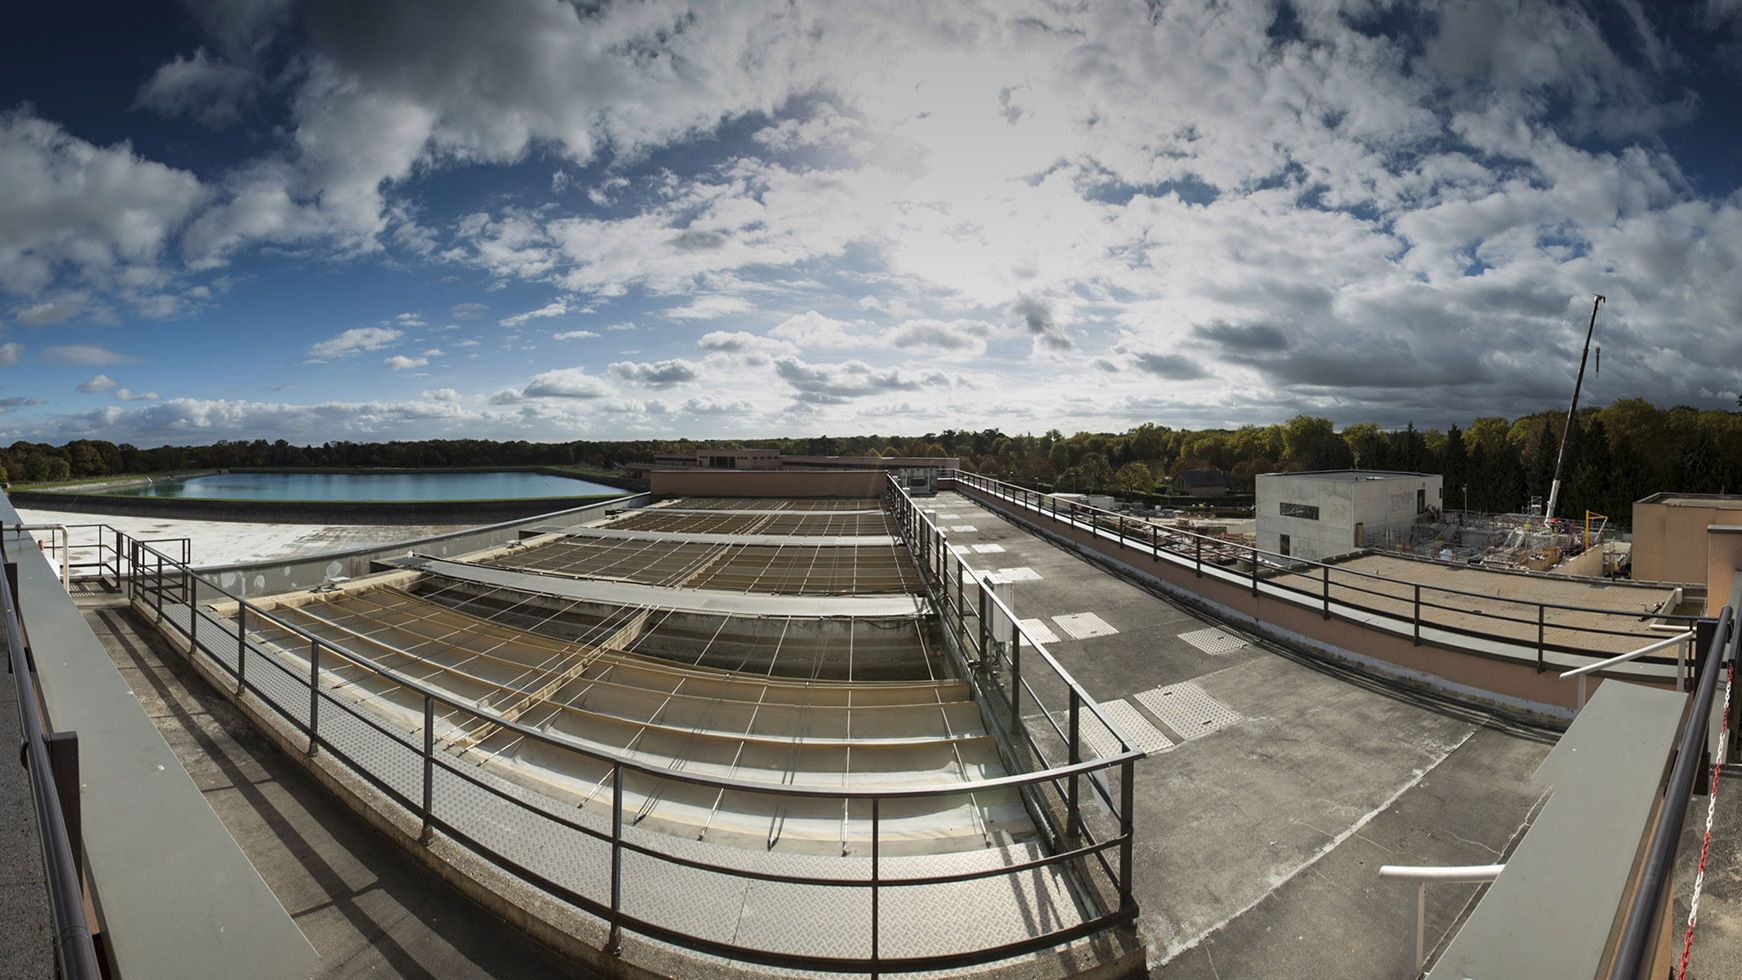 Design, build and operate a water treatment plant